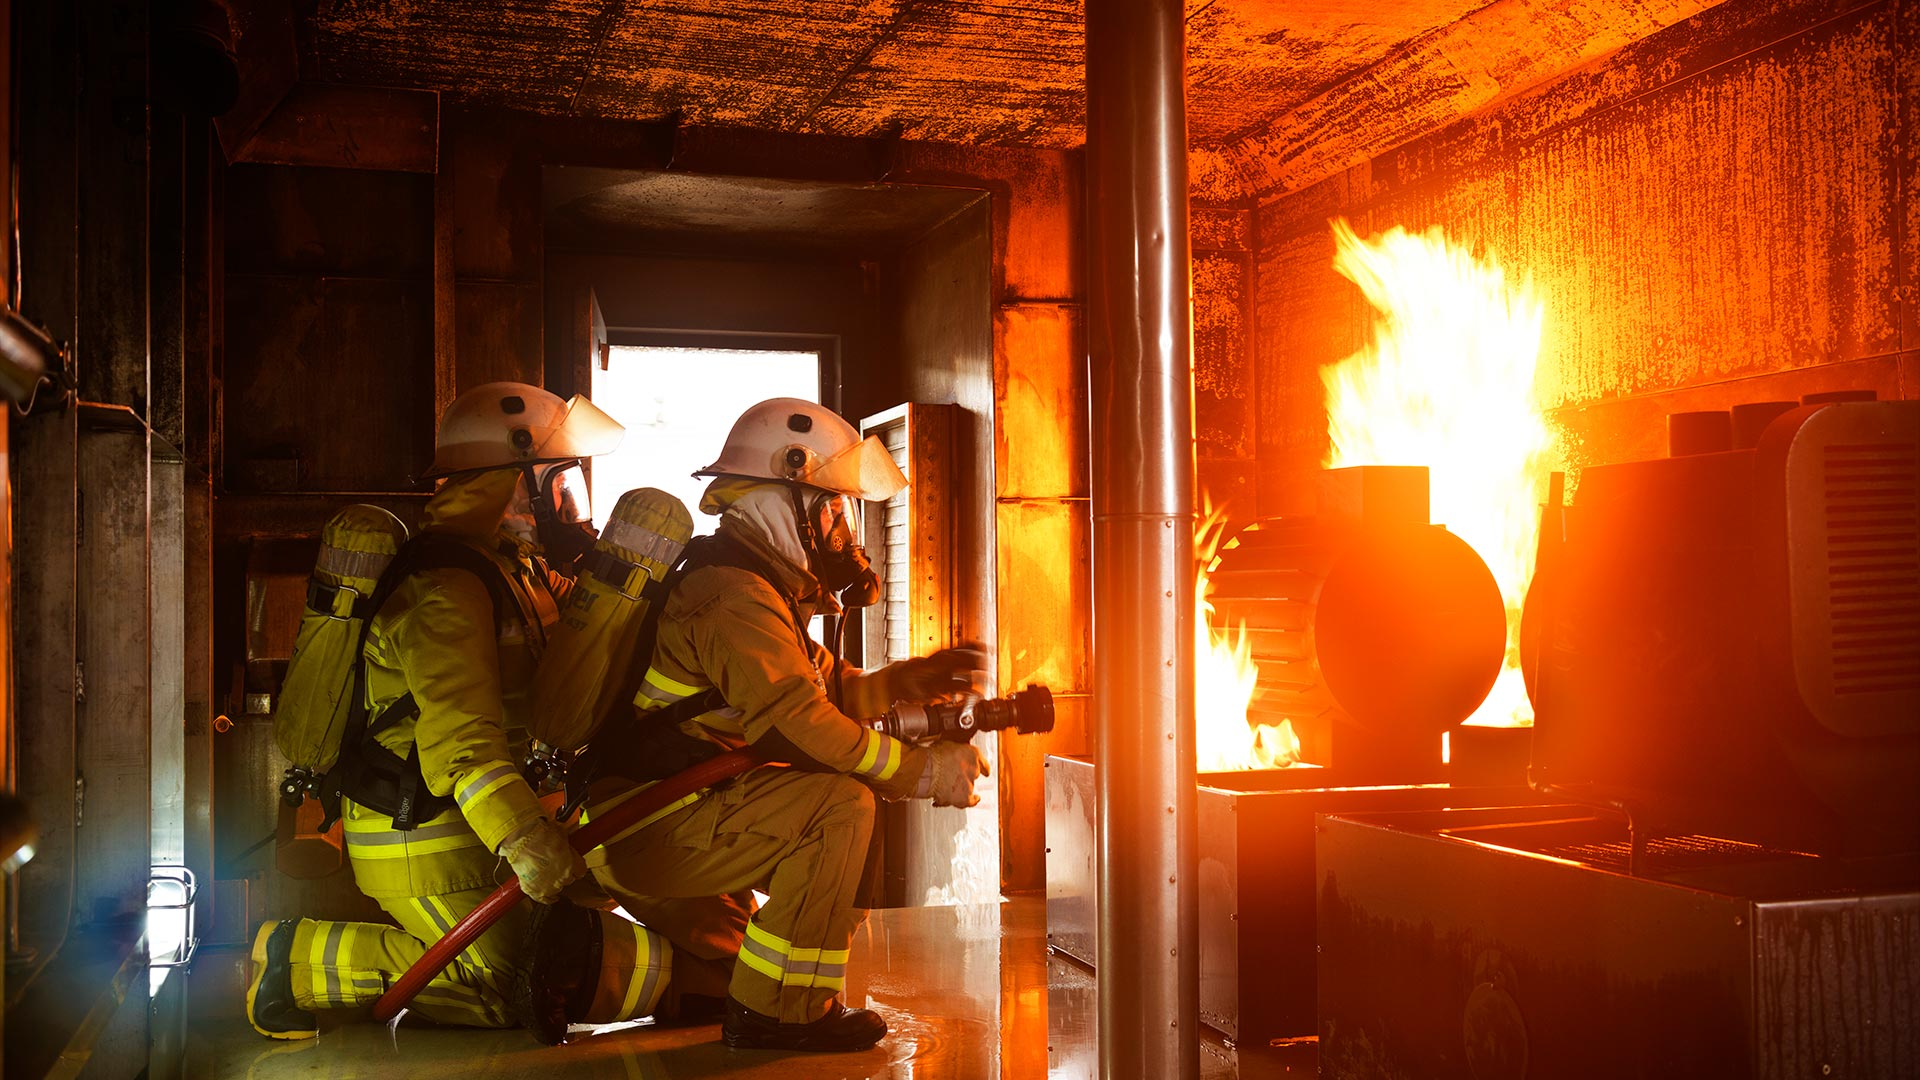 gbrimc-facilities-maritime-gbrimc-05-fire-emergency-training.jpg